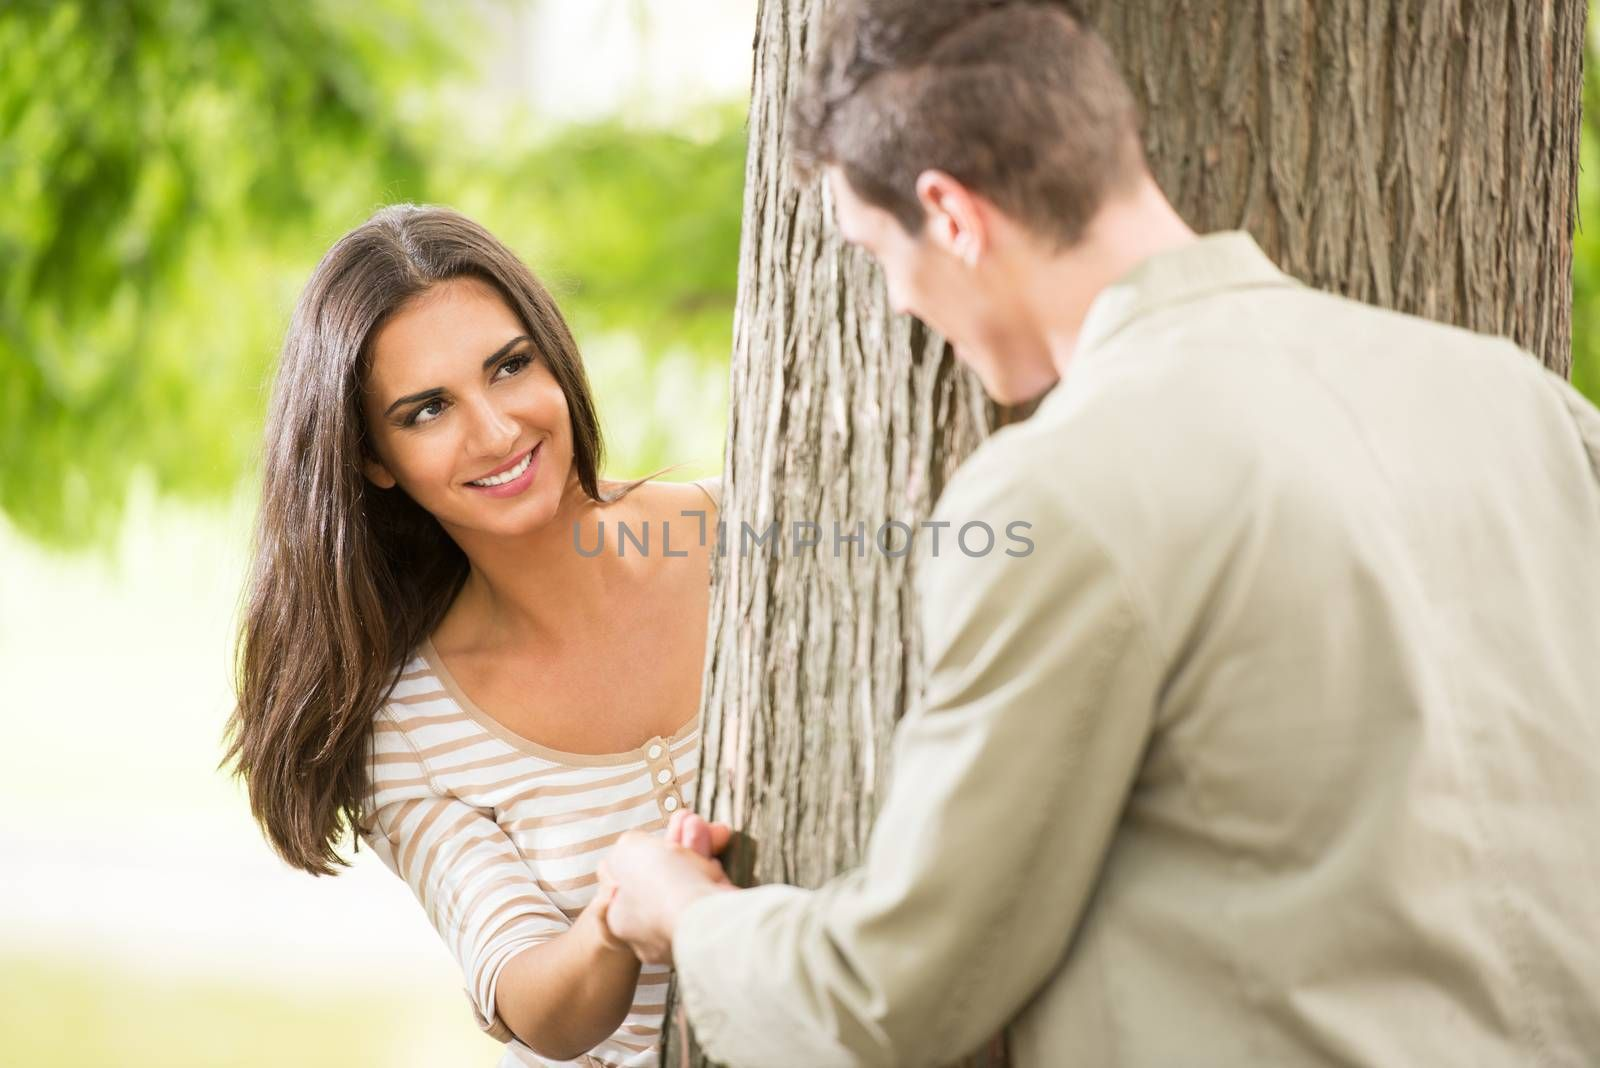 Beautiful girl in the park with her boyfriend enjoys playing hide behind a tree.